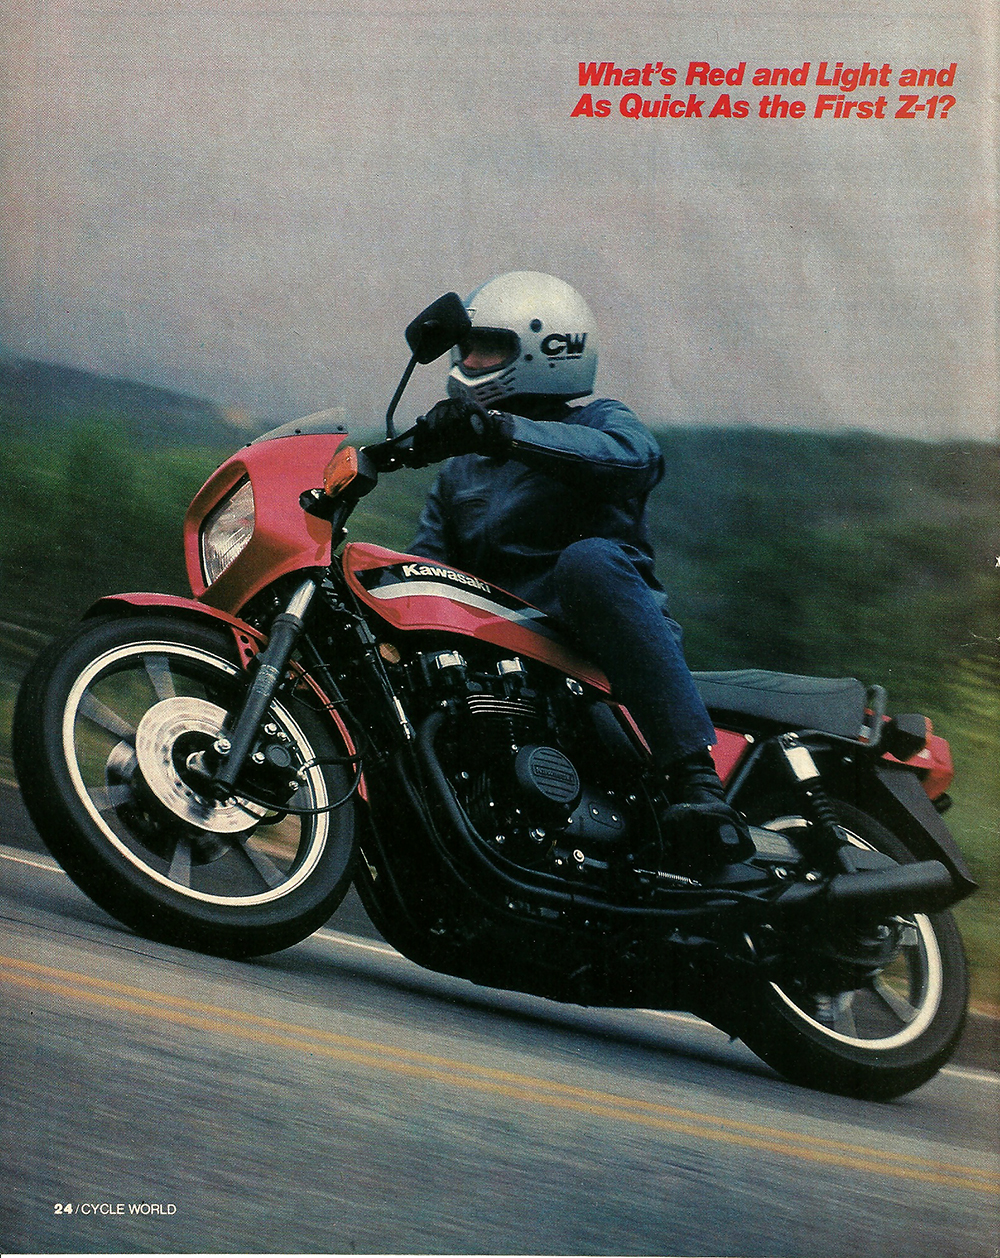 1981 Kawasaki GPz 550 road test 1.jpg